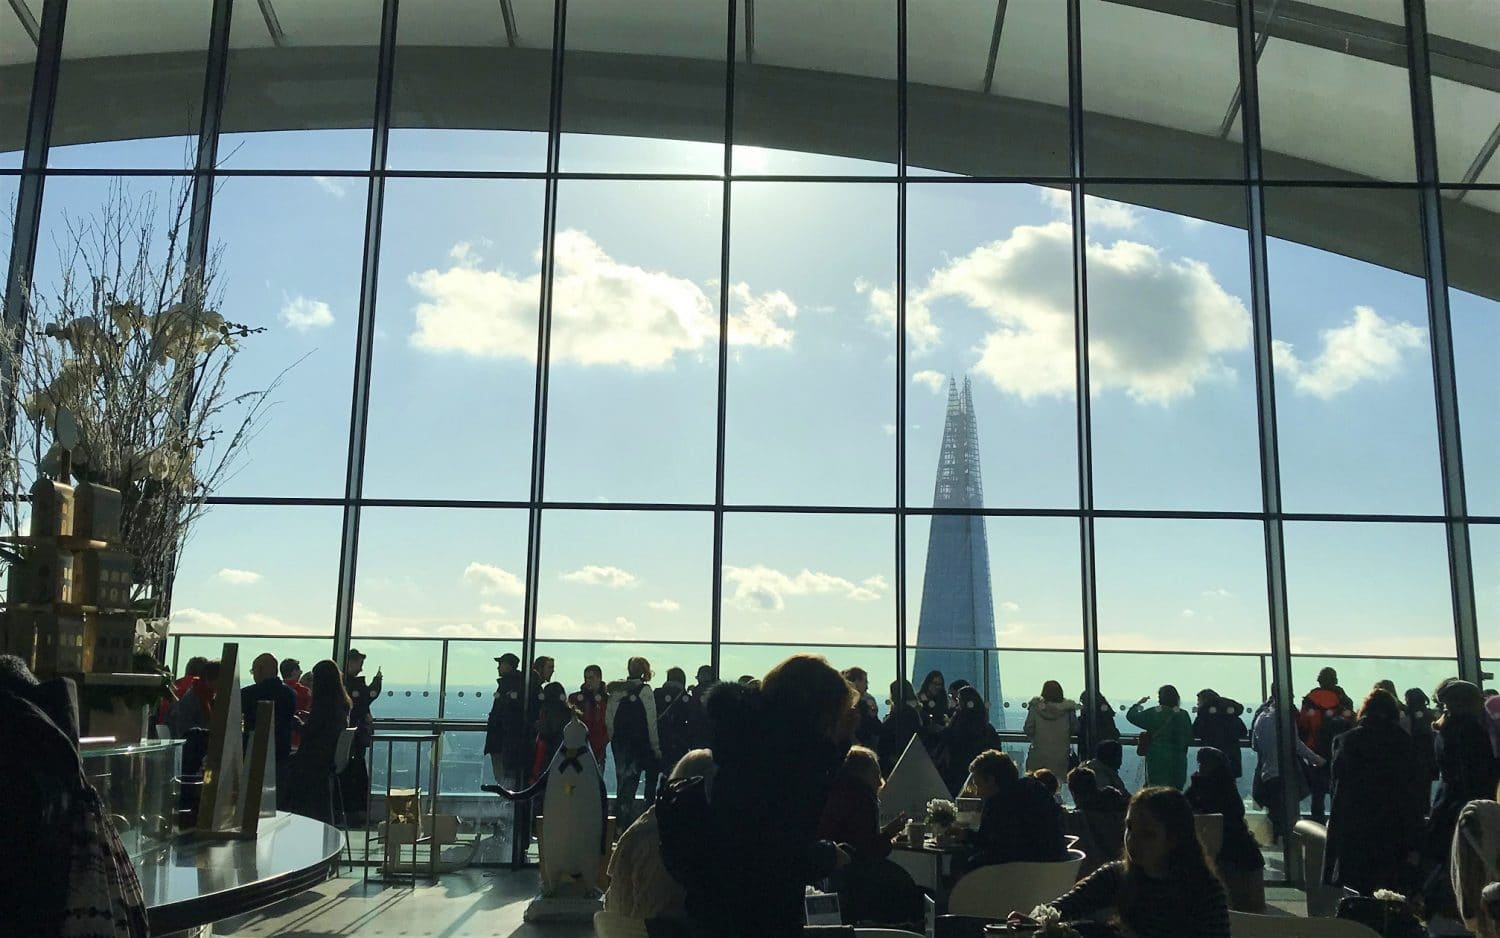 Get great views of the Shard from the Sky Garden